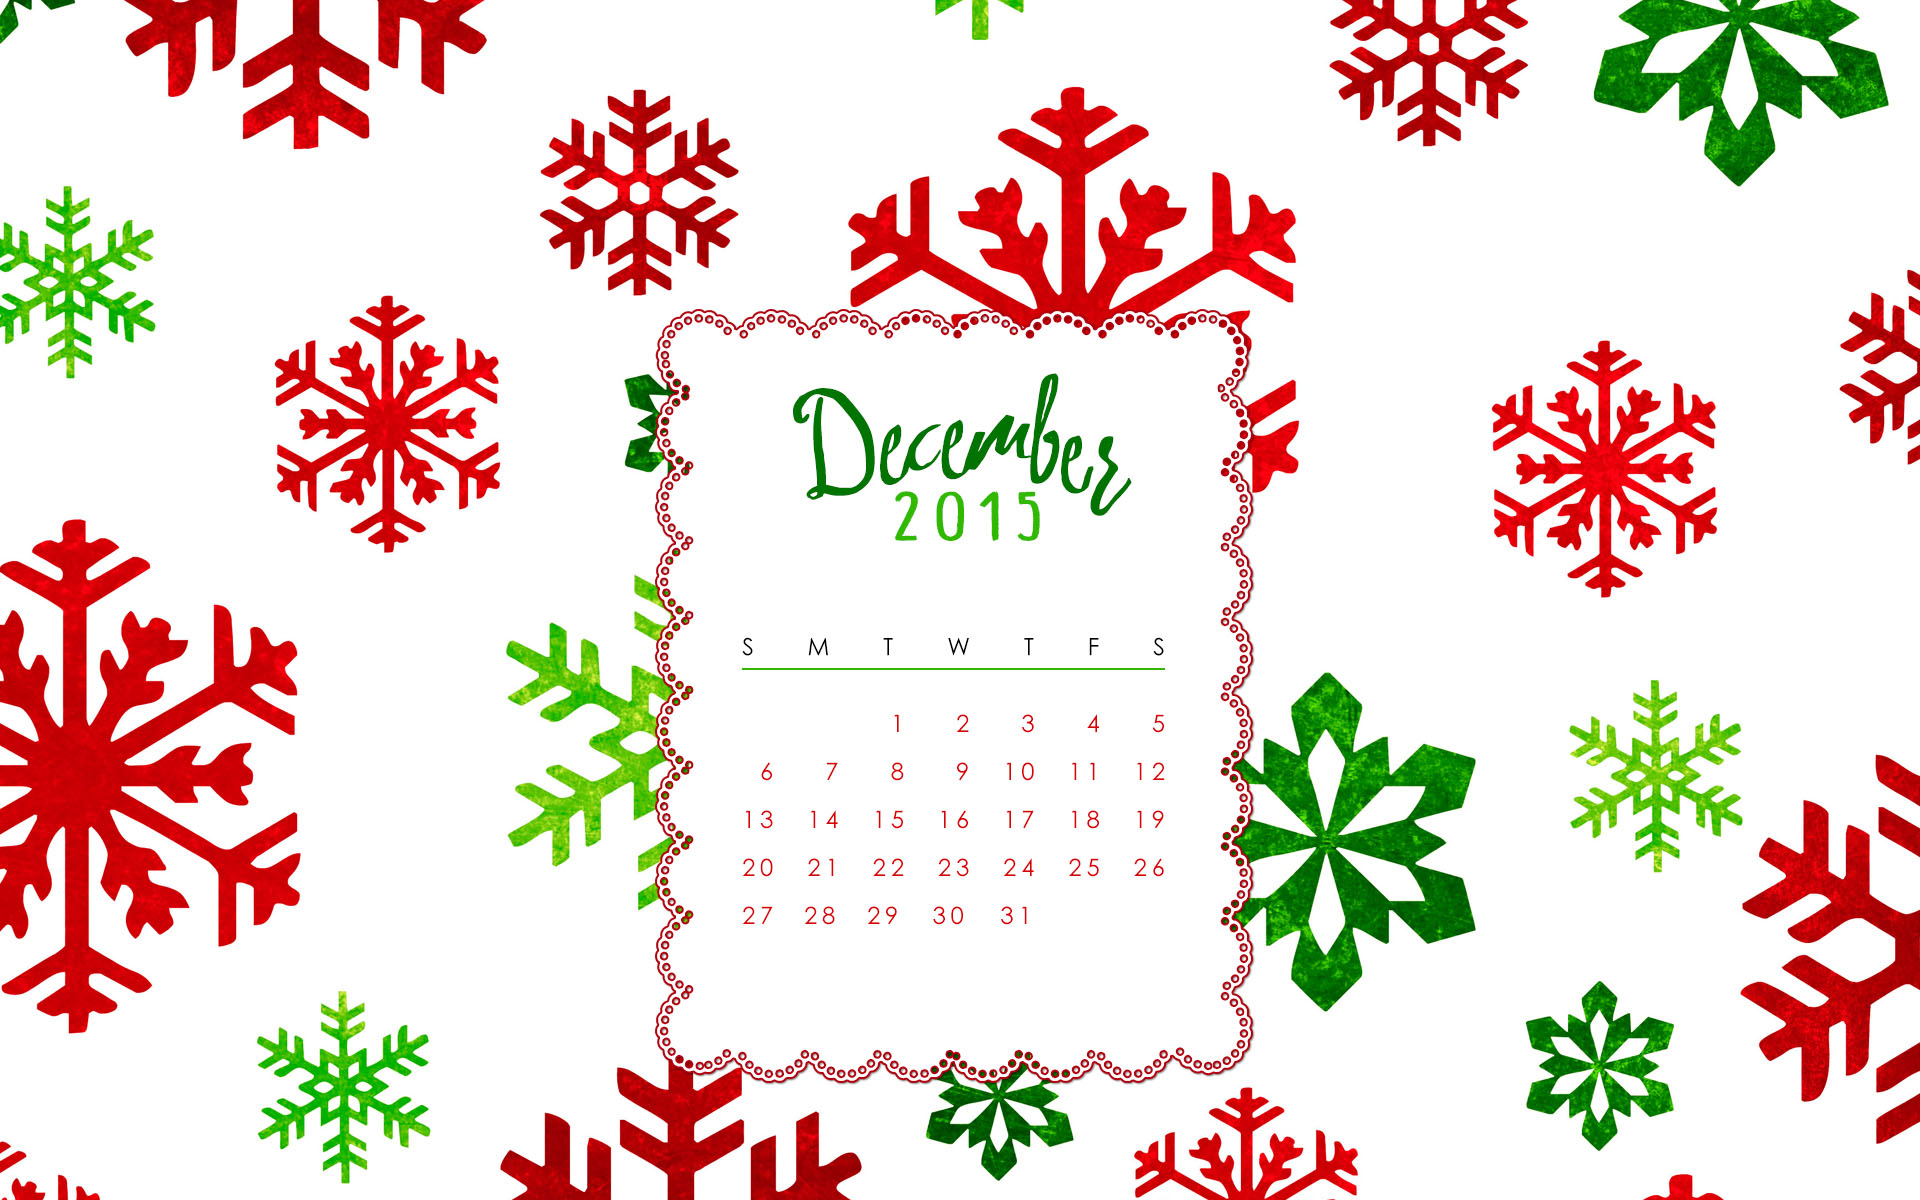 December Calendar Art : Free december calendar background